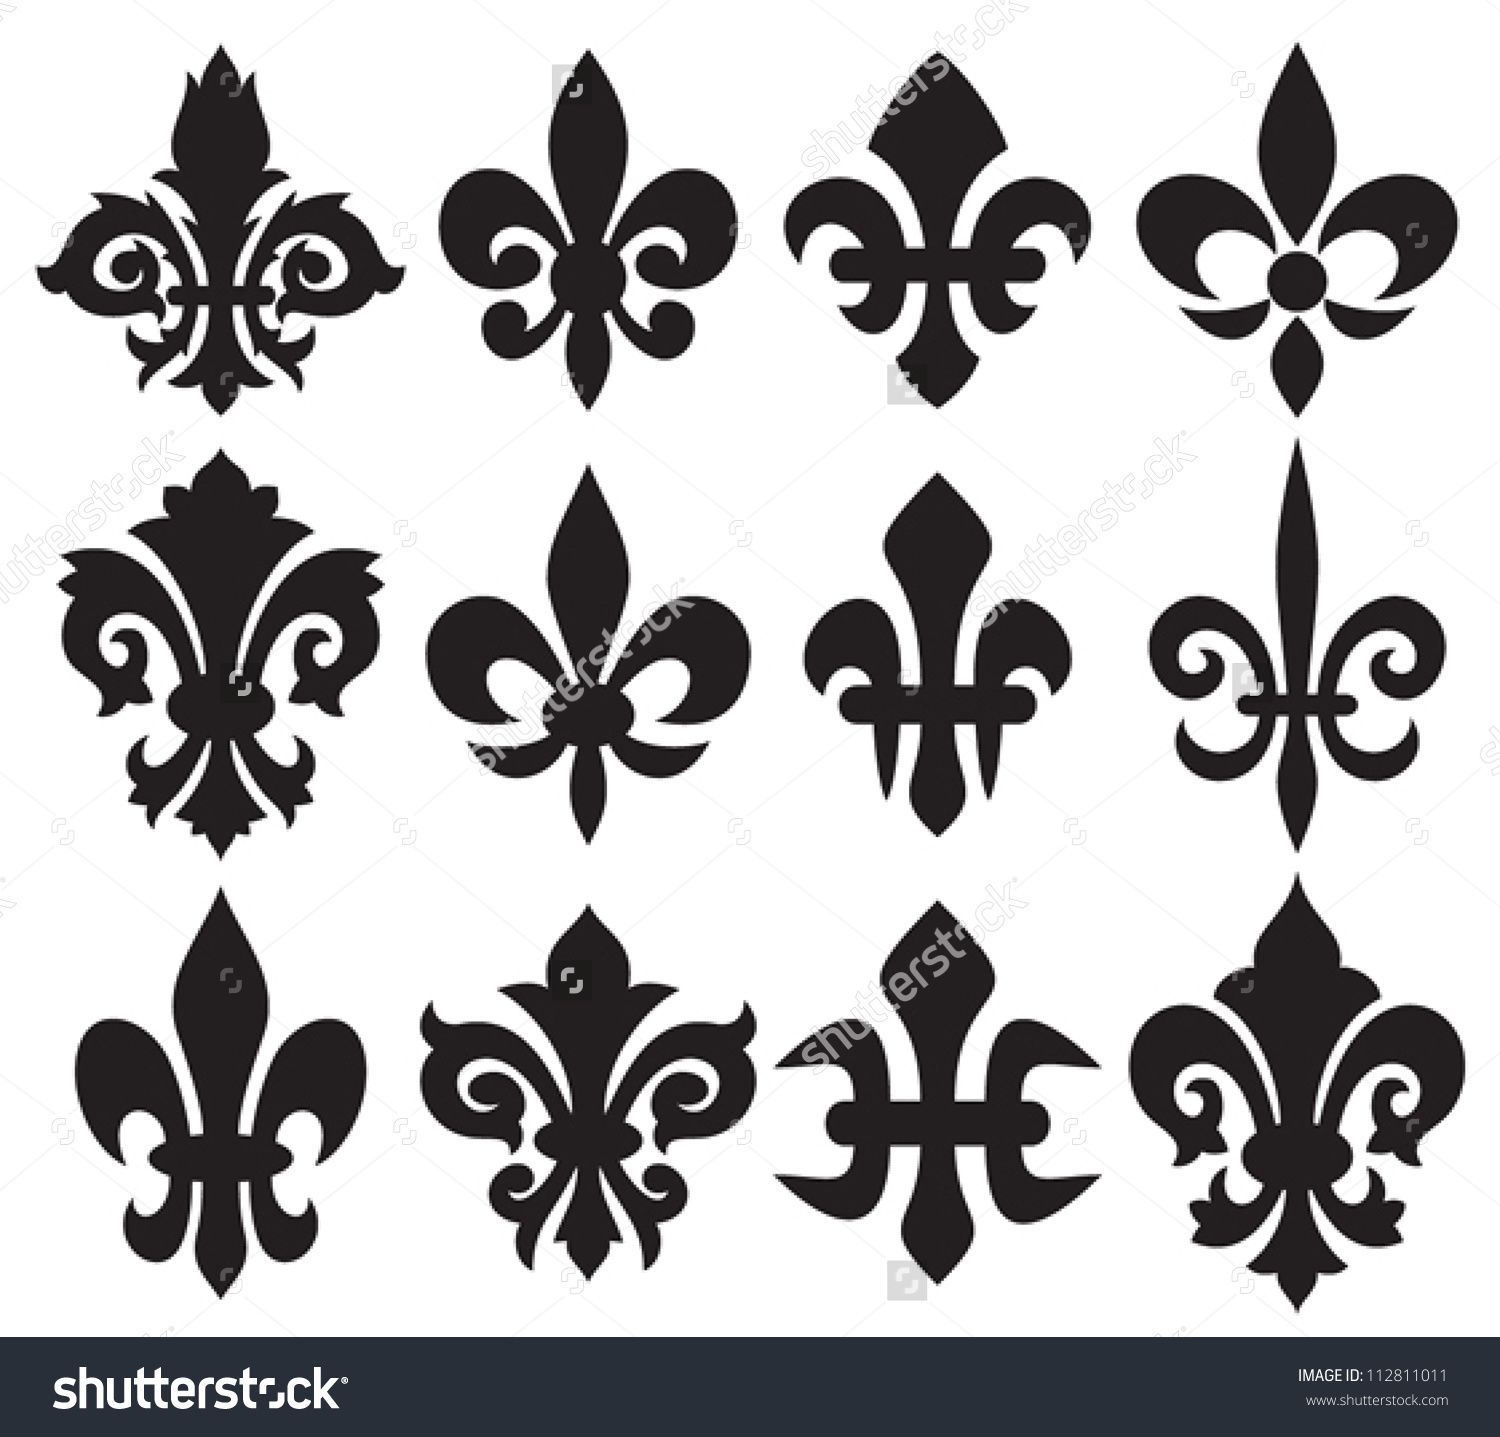 French symbols google search french buildings pinterest french symbols google search buycottarizona